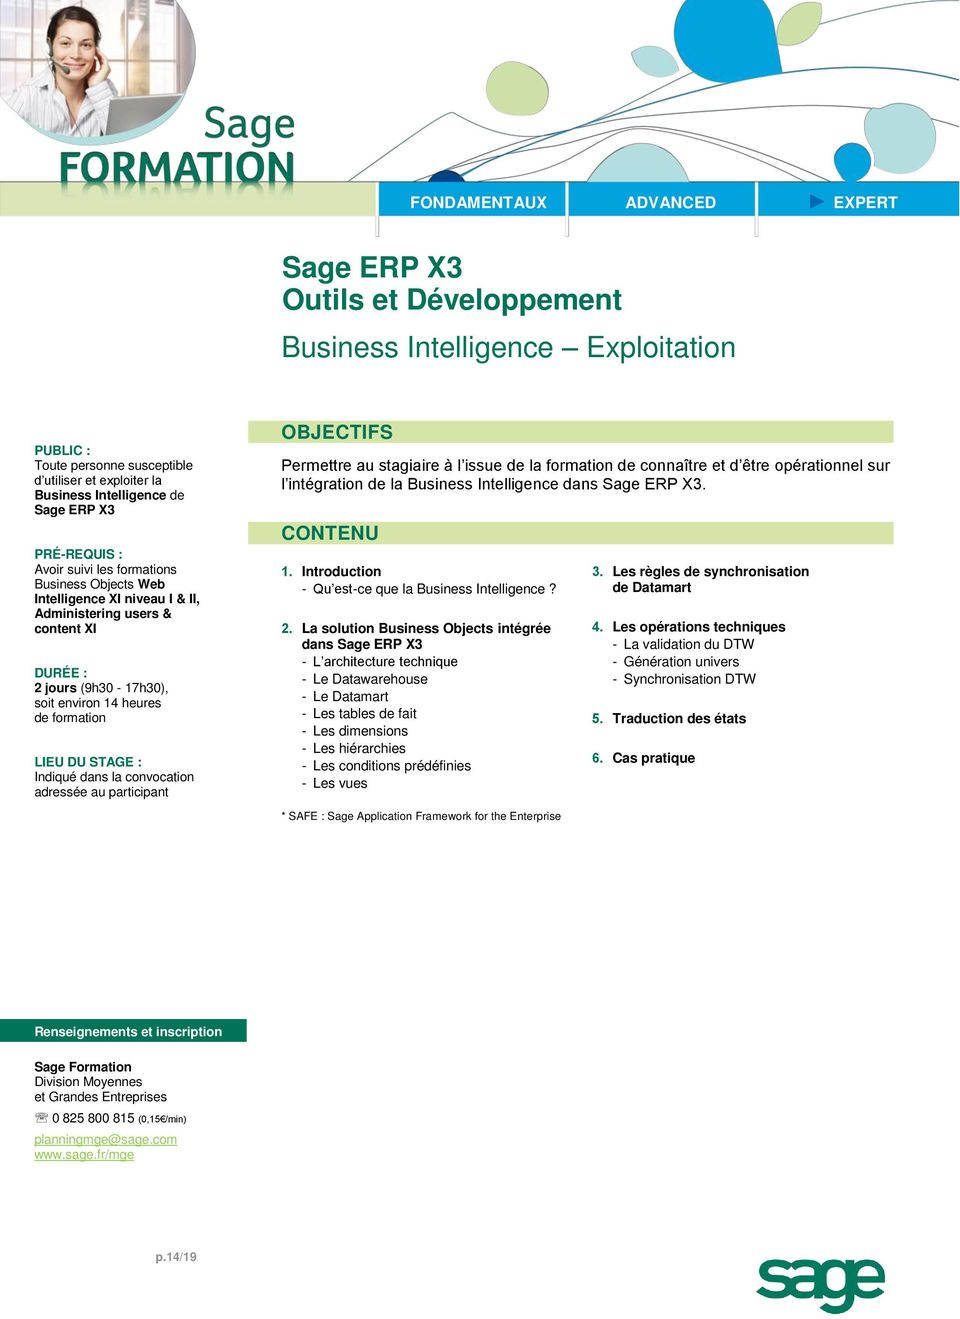 Intelligence dans. 1. Introduction - Qu est-ce que la Business Intelligence? 2.